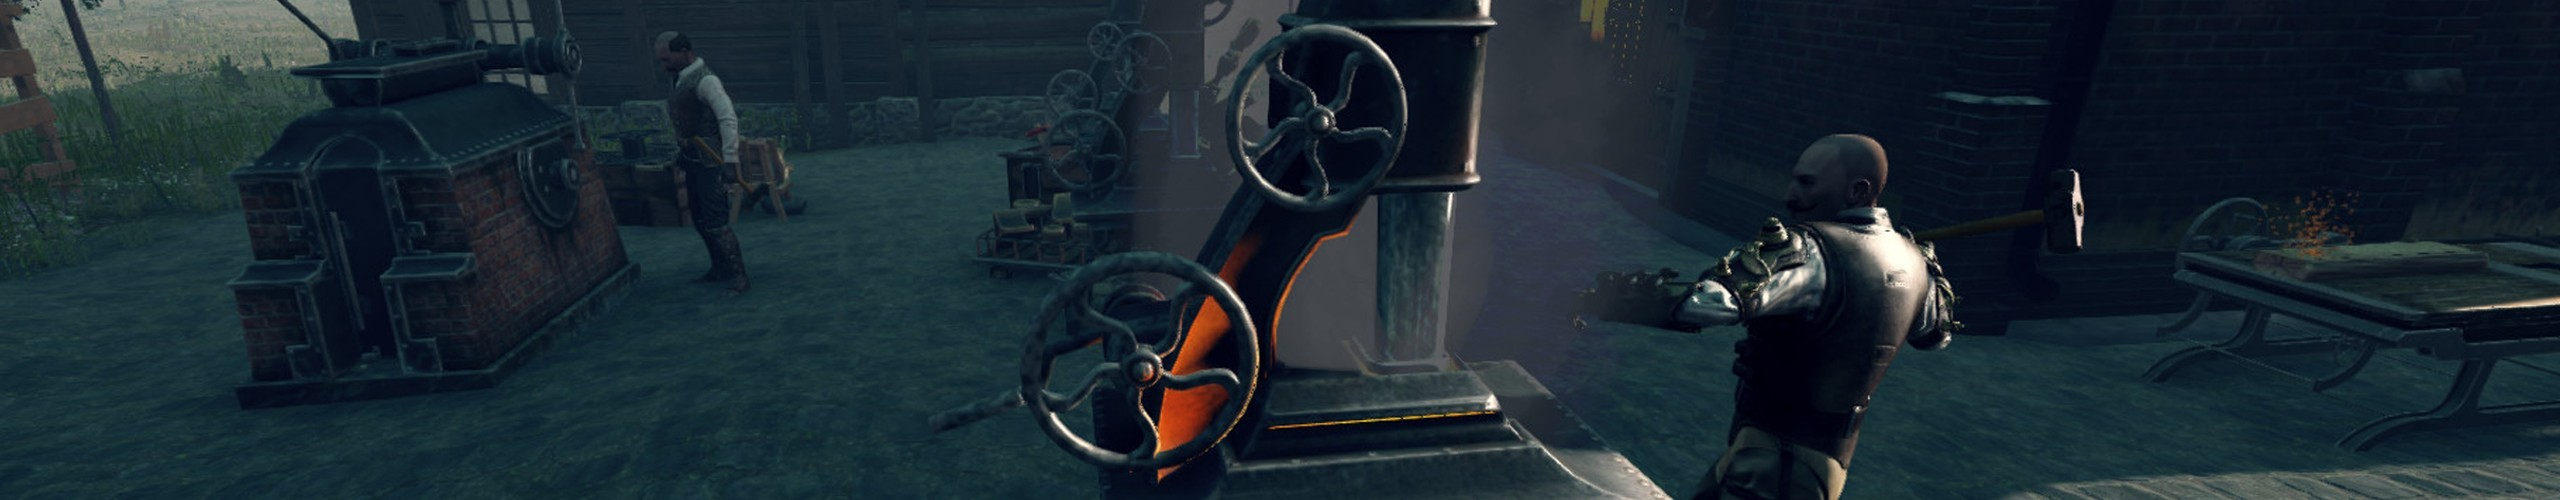 Steam Hammer (B2P)